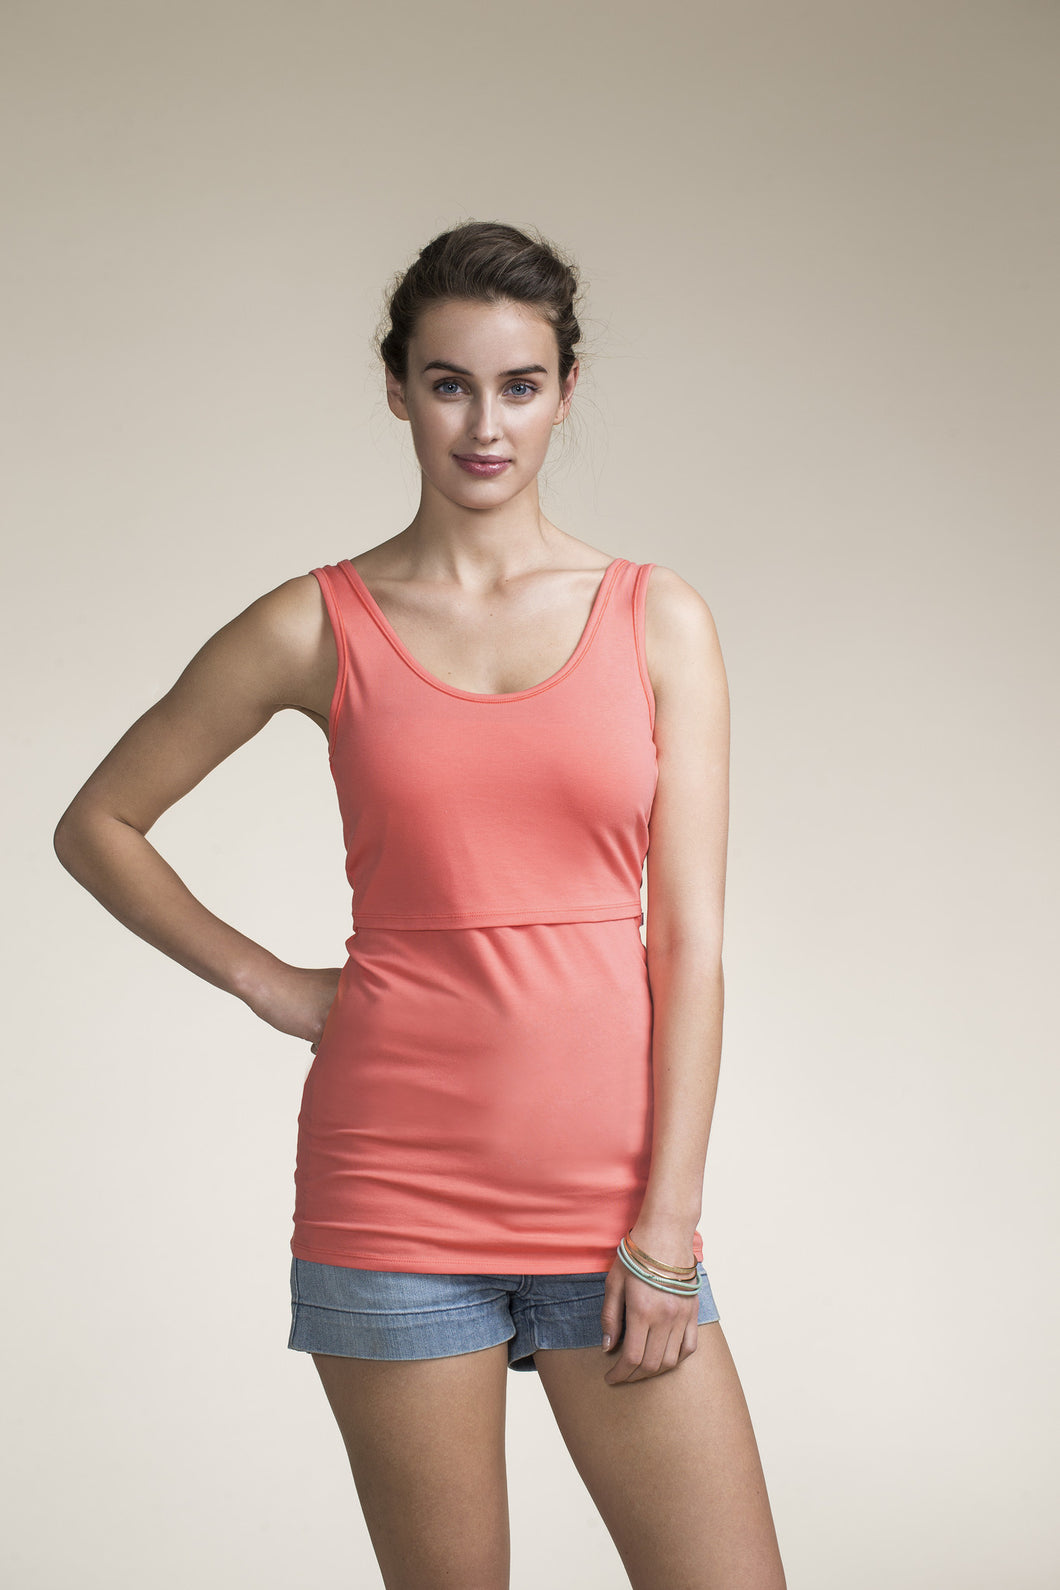 Nursing Singlet - Watermelon [it]Canottiera premaman e Allattamento - Anguria